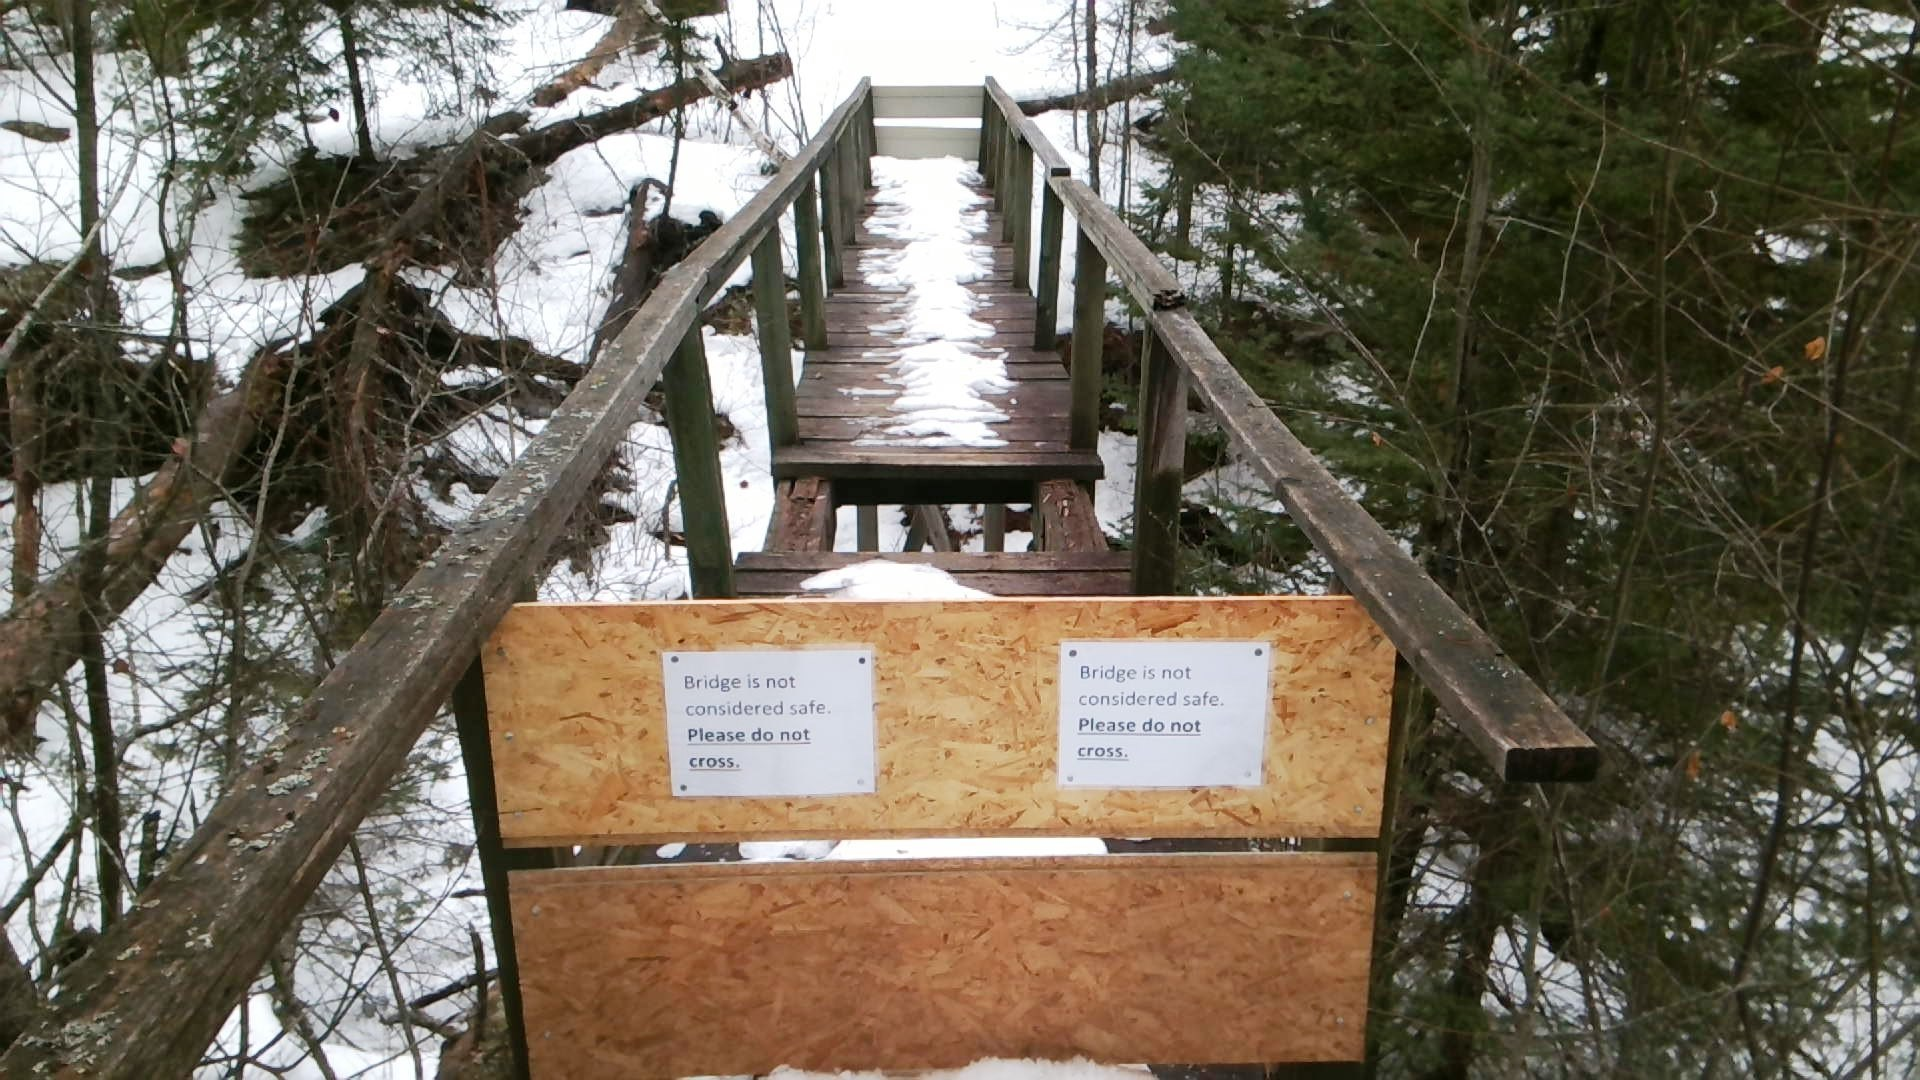 Michigan marquette county gwinn - A Footbridge At Black River Falls Has Been Deemed Unsafe And Has Been Closed By The